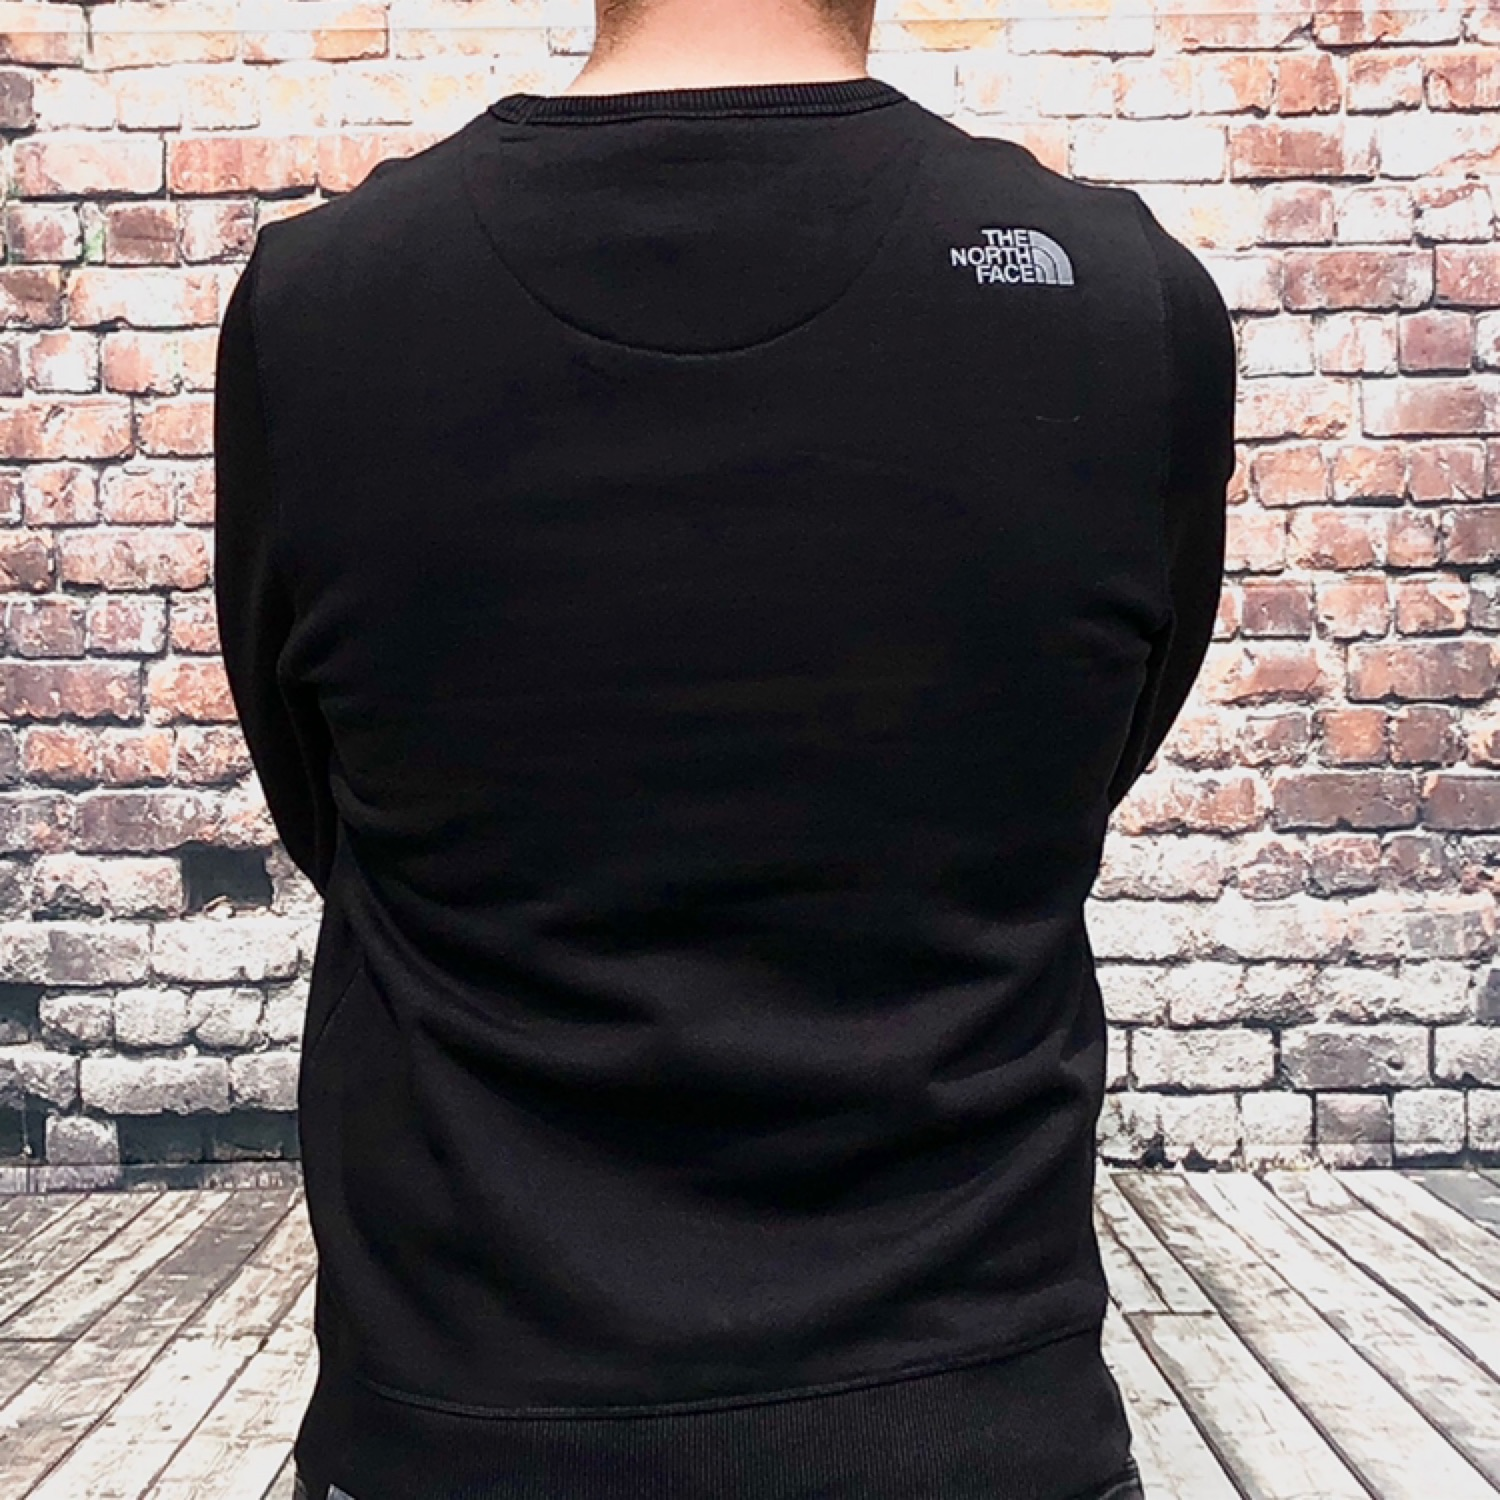 Brand New Black The North Face Sweater / Jumper